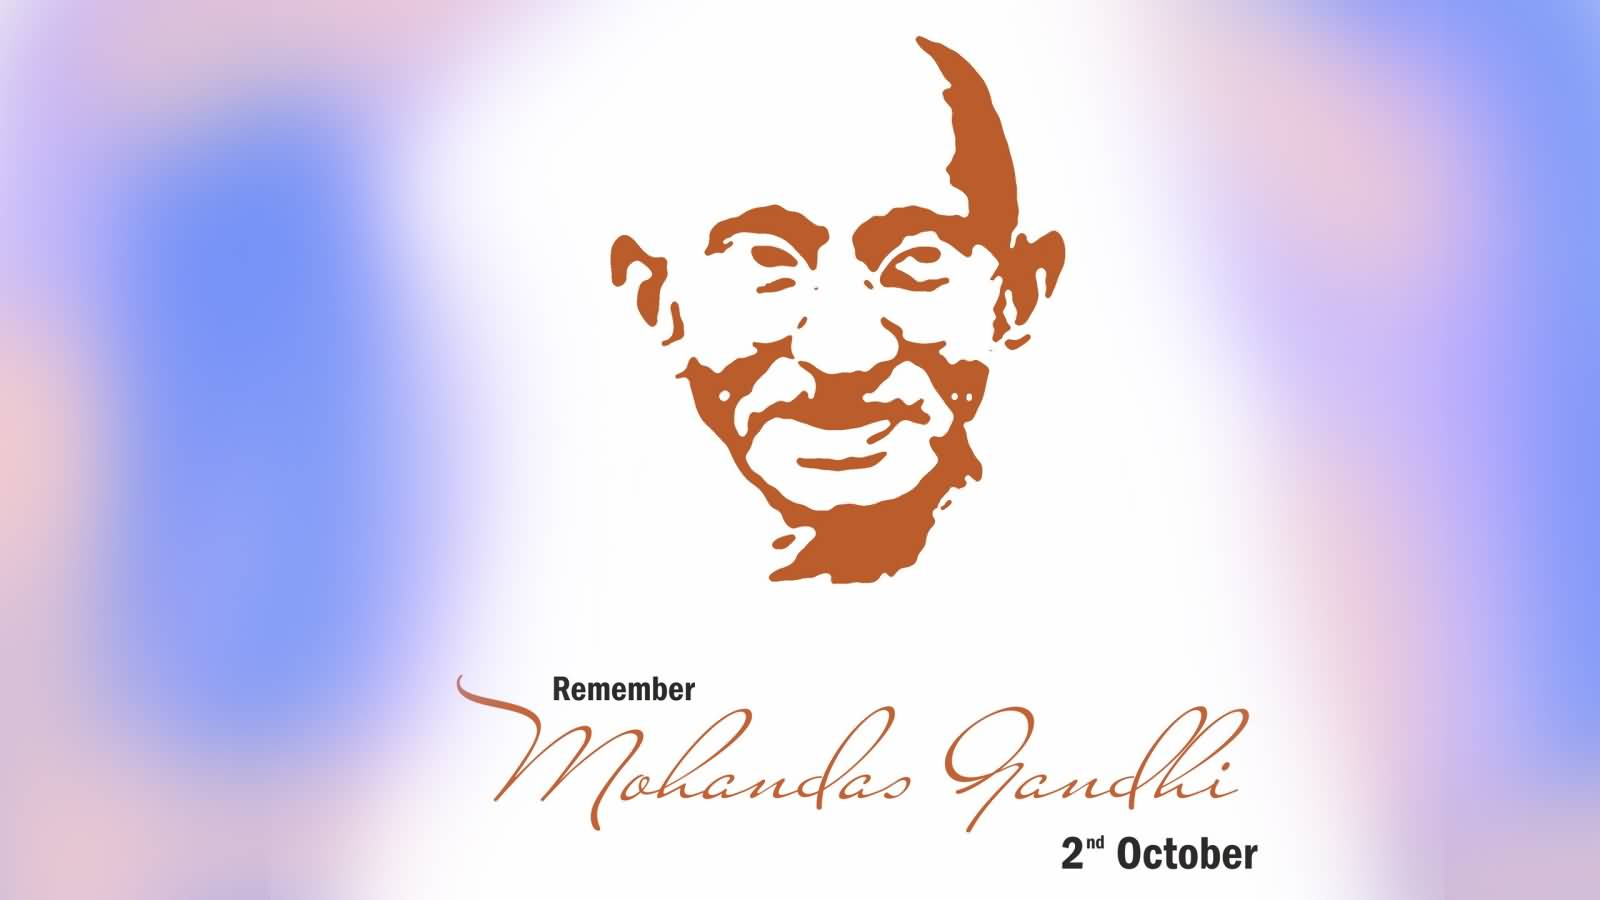 gandhi paper Essay on the biography of mahatma gandhi mahatma gandhi was a great politician, leader, statesman, scholar and freedom fighter he was a public figure he led the freedom movement it was under his leadership that india got independence from the british rule after years of struggle he launched.